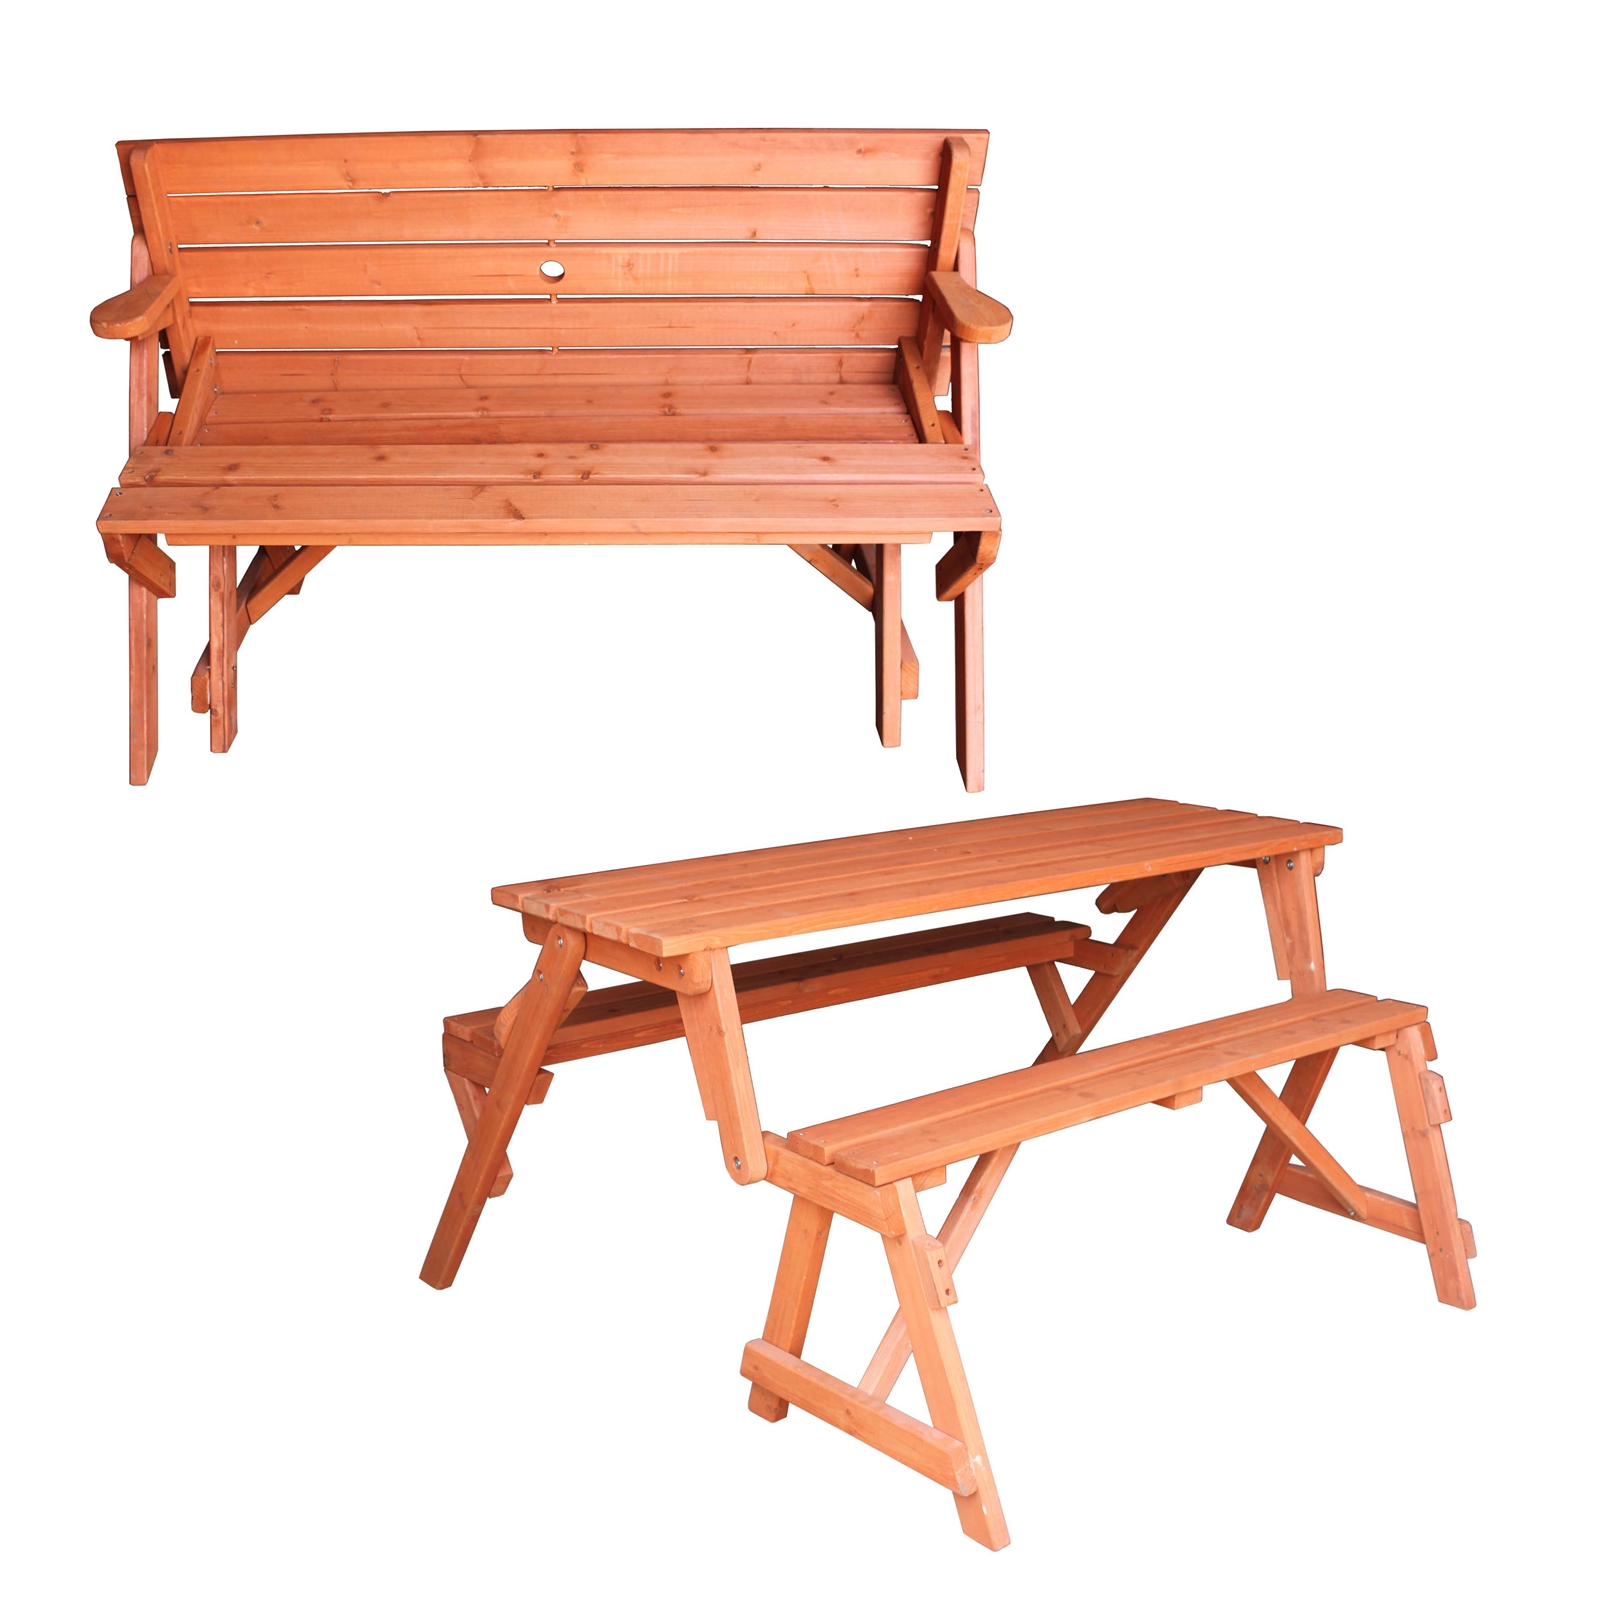 Folding Bench And Picnic Table Combo Plans Popular Woodworking Guides